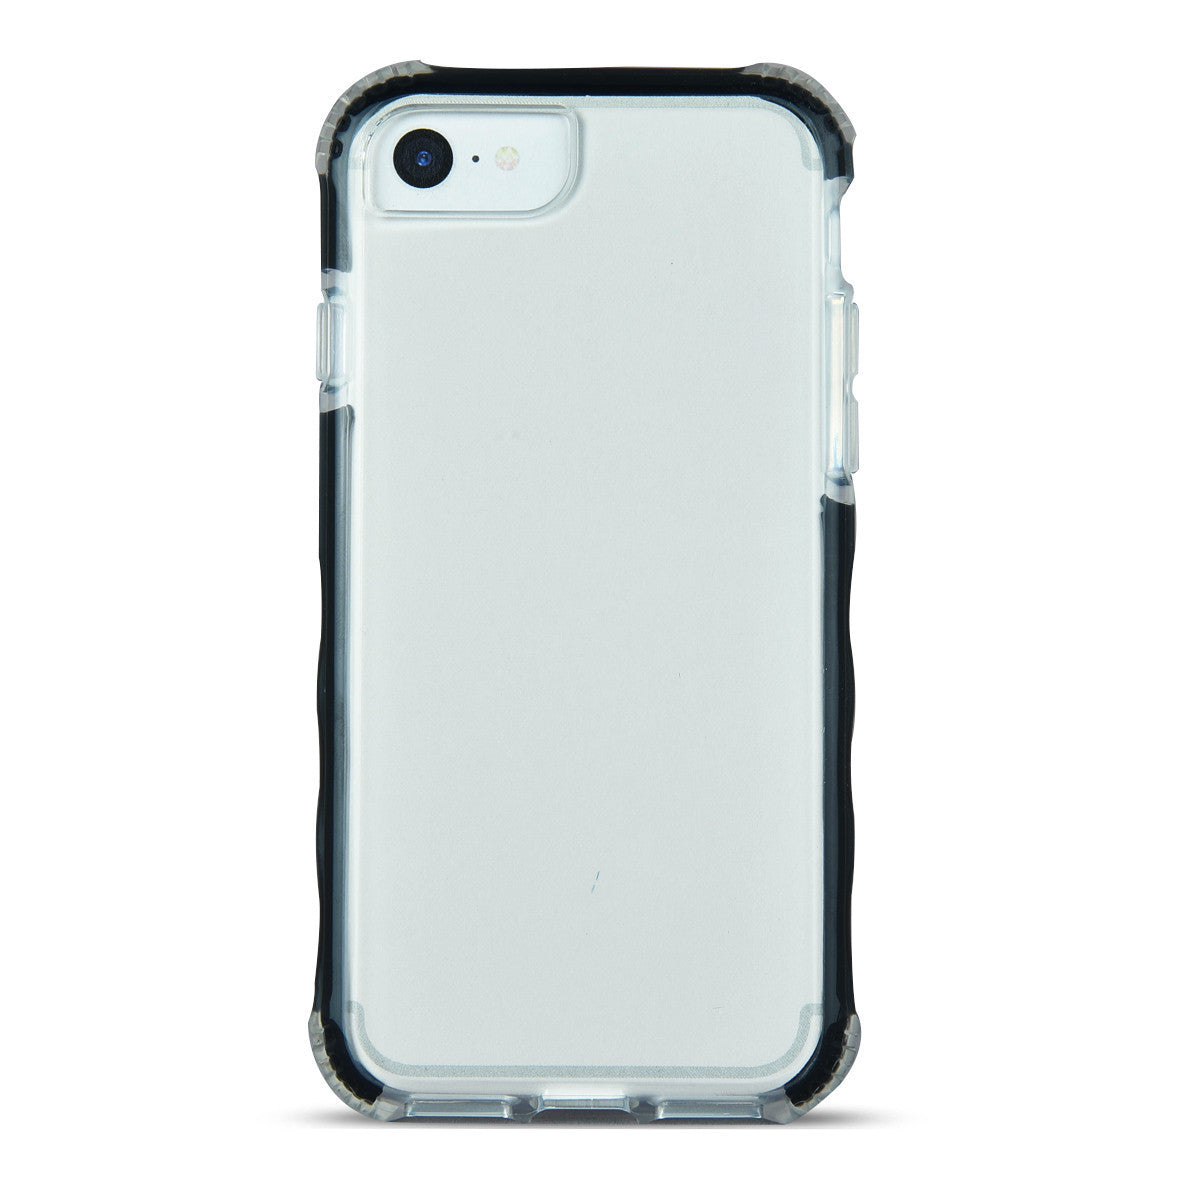 lowest price 2154b 9957f iOrigin iPhone 7 / iPhone 7 Plus Clear Bumper Case - Black Bumper